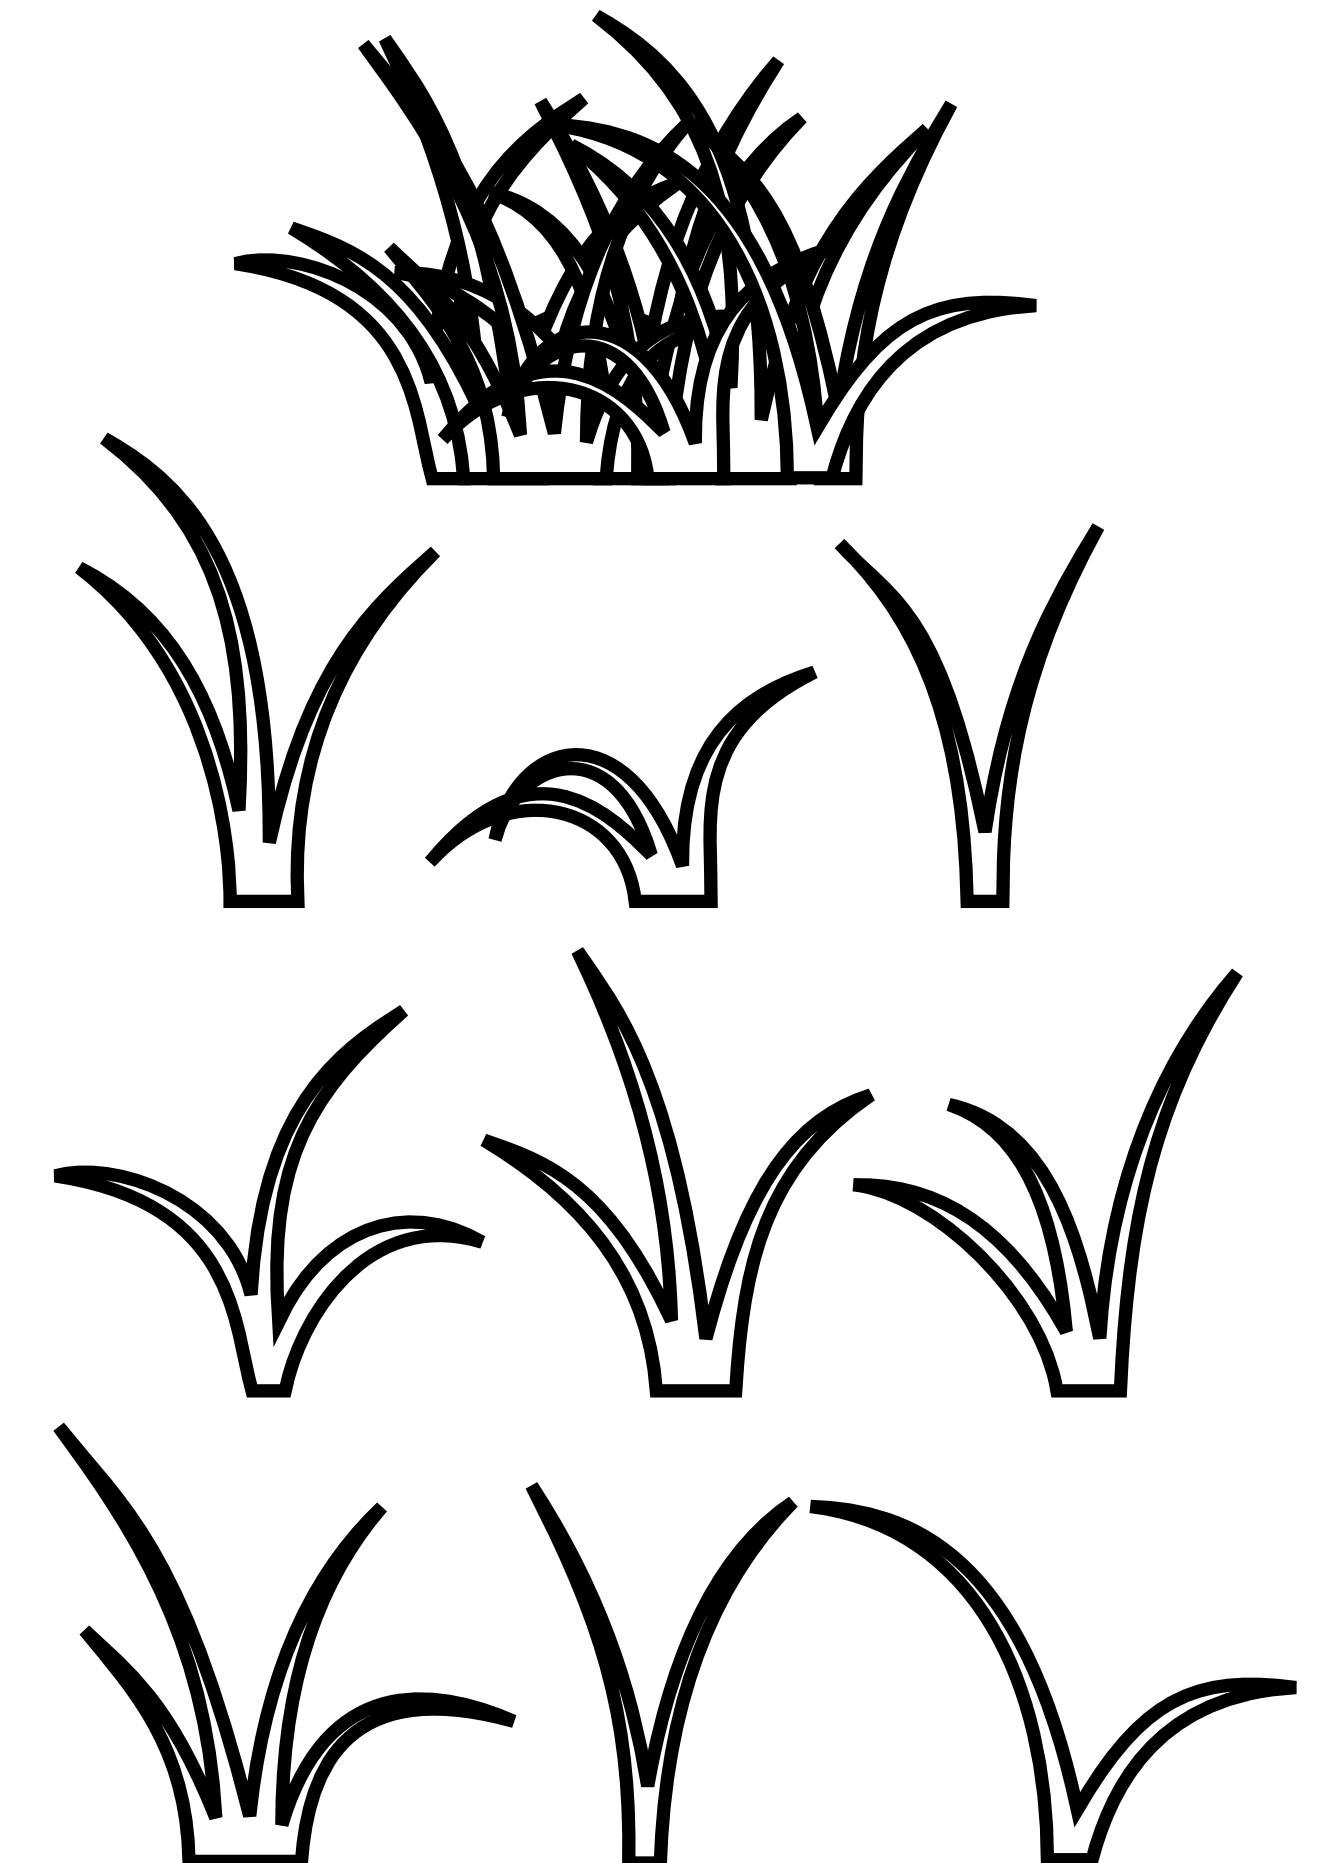 Weeds drawing imagination. Grass black white line